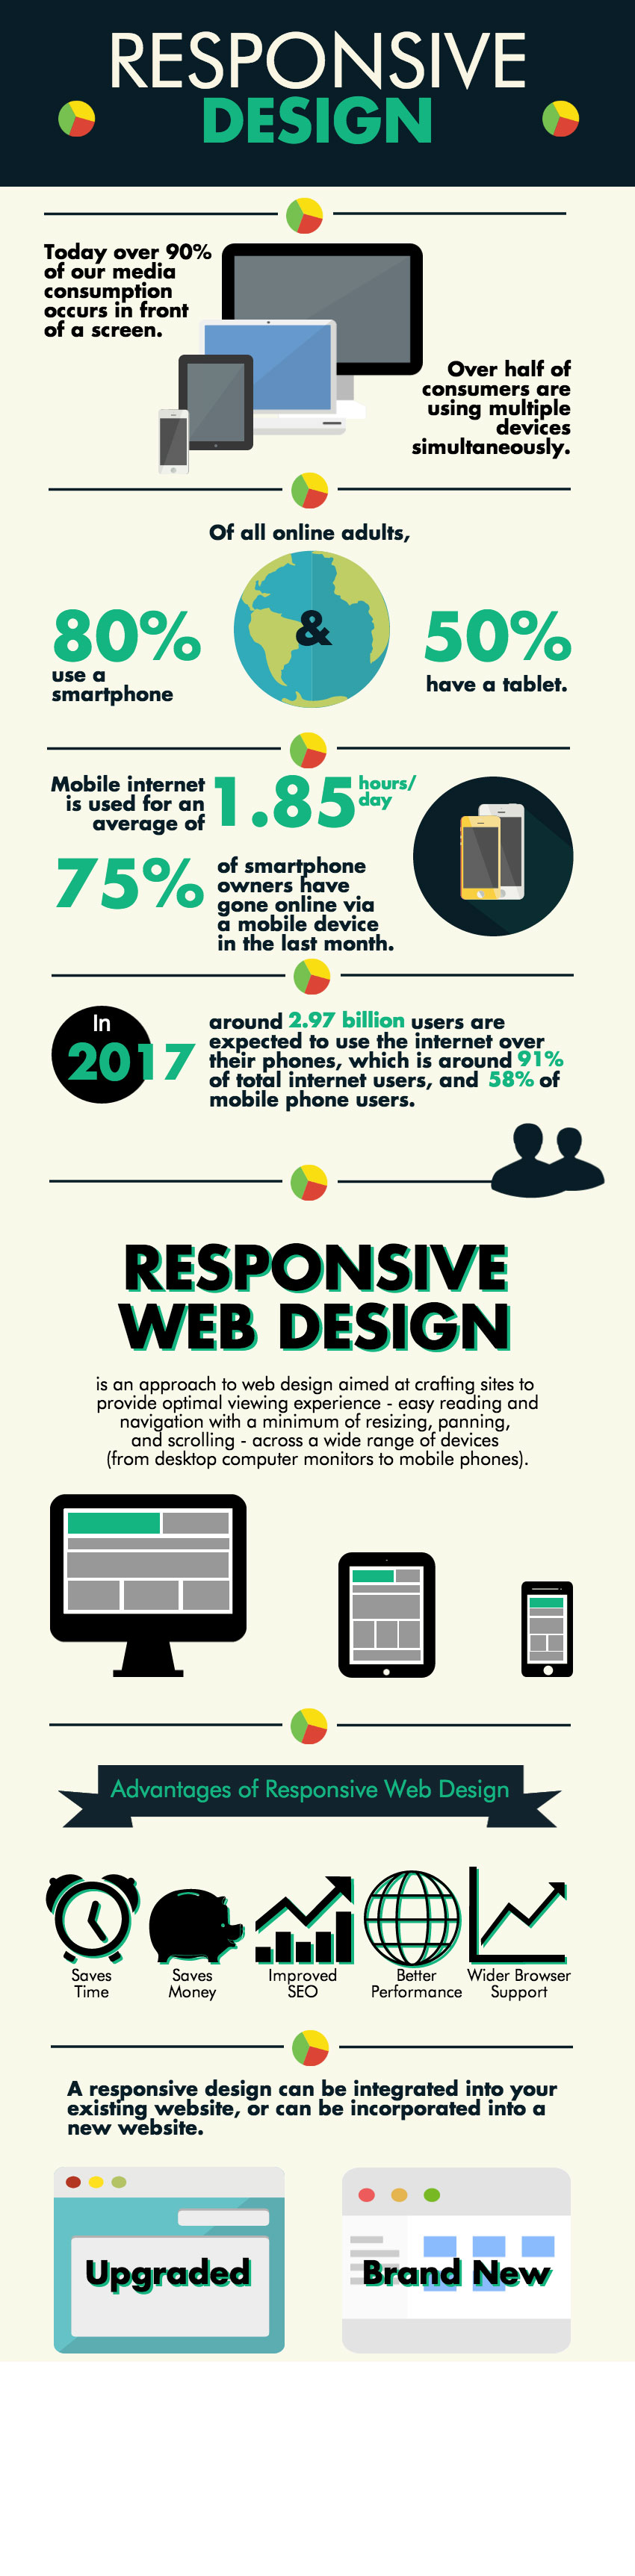 Responsive-Design-InfographicCPS